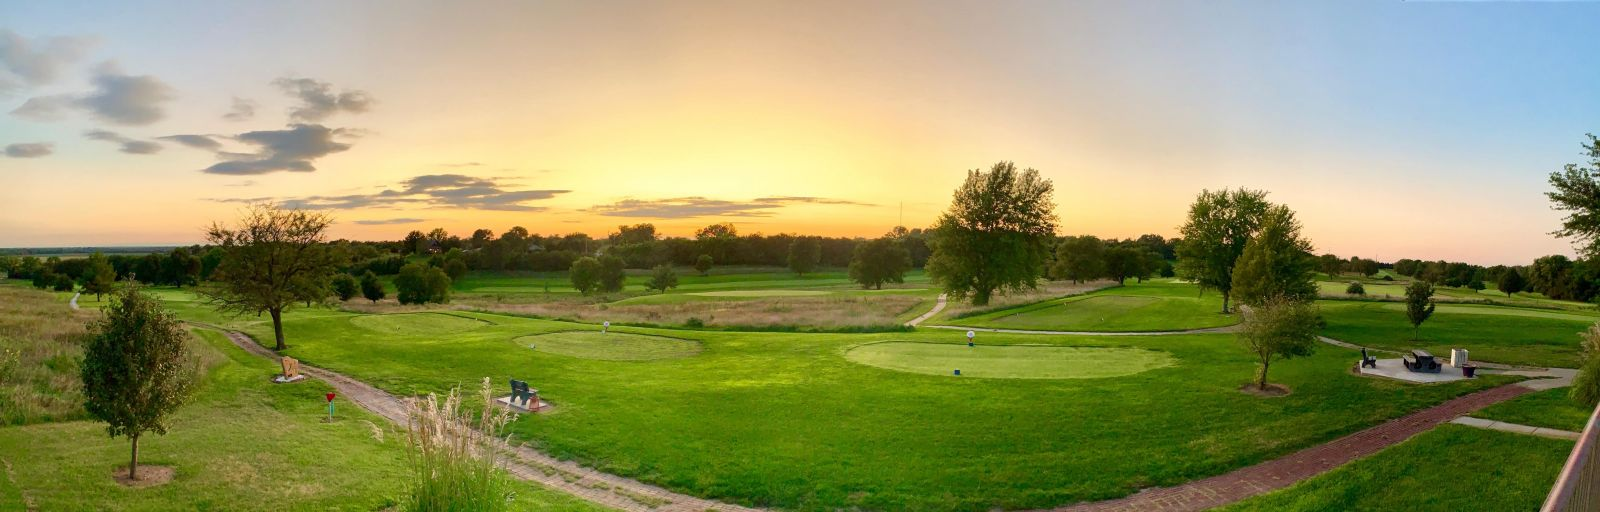 Sunset at Indian Hills Golf Course in Chapman Kansas